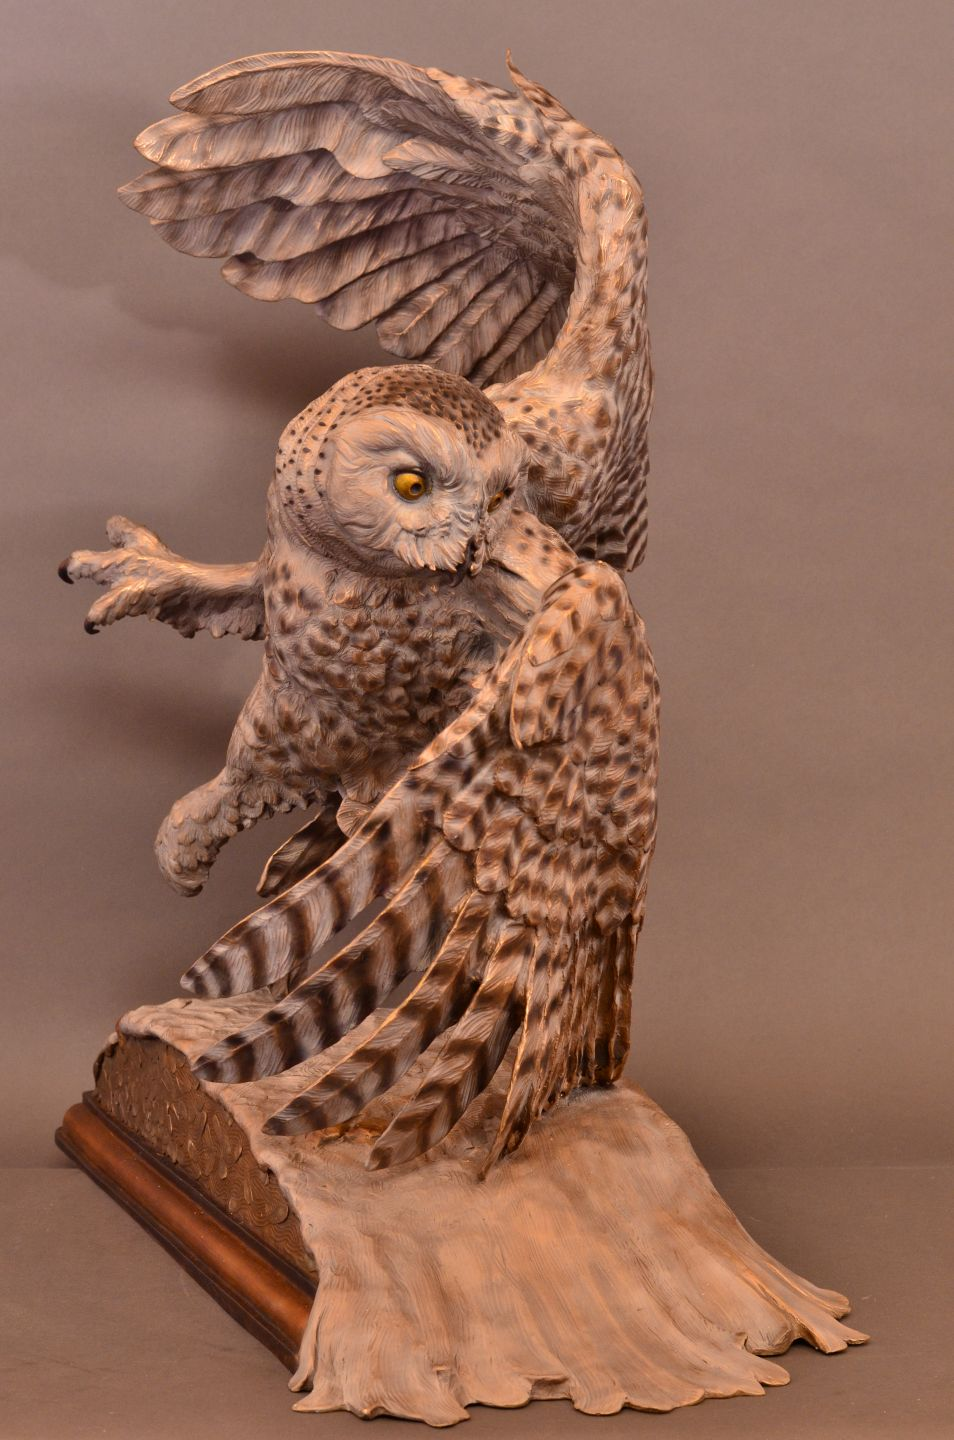 A bronze sculpture by Jim Green of a female Snowy Owl in flight.